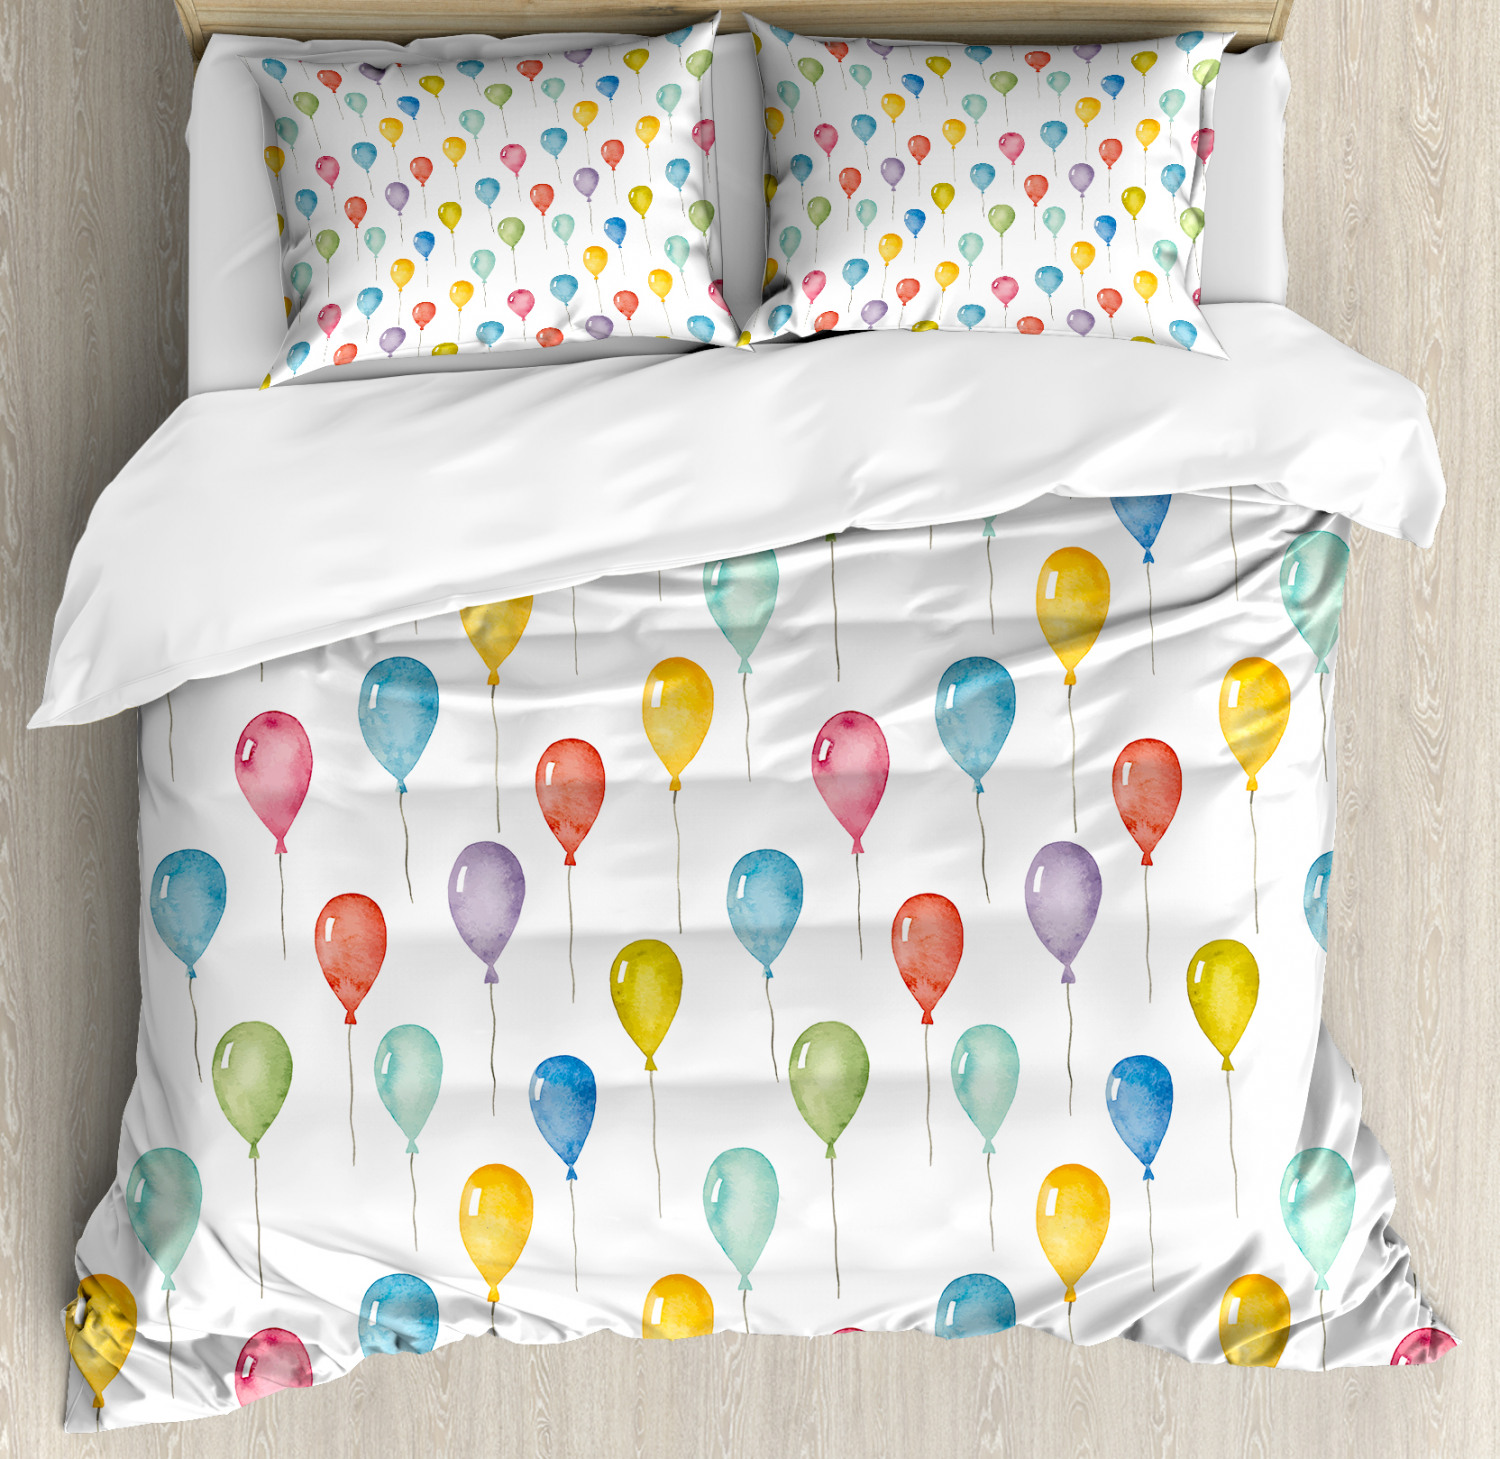 Kids Duvet Cover Set with Pillow Shams Flying WaterColoreee Balloons Print